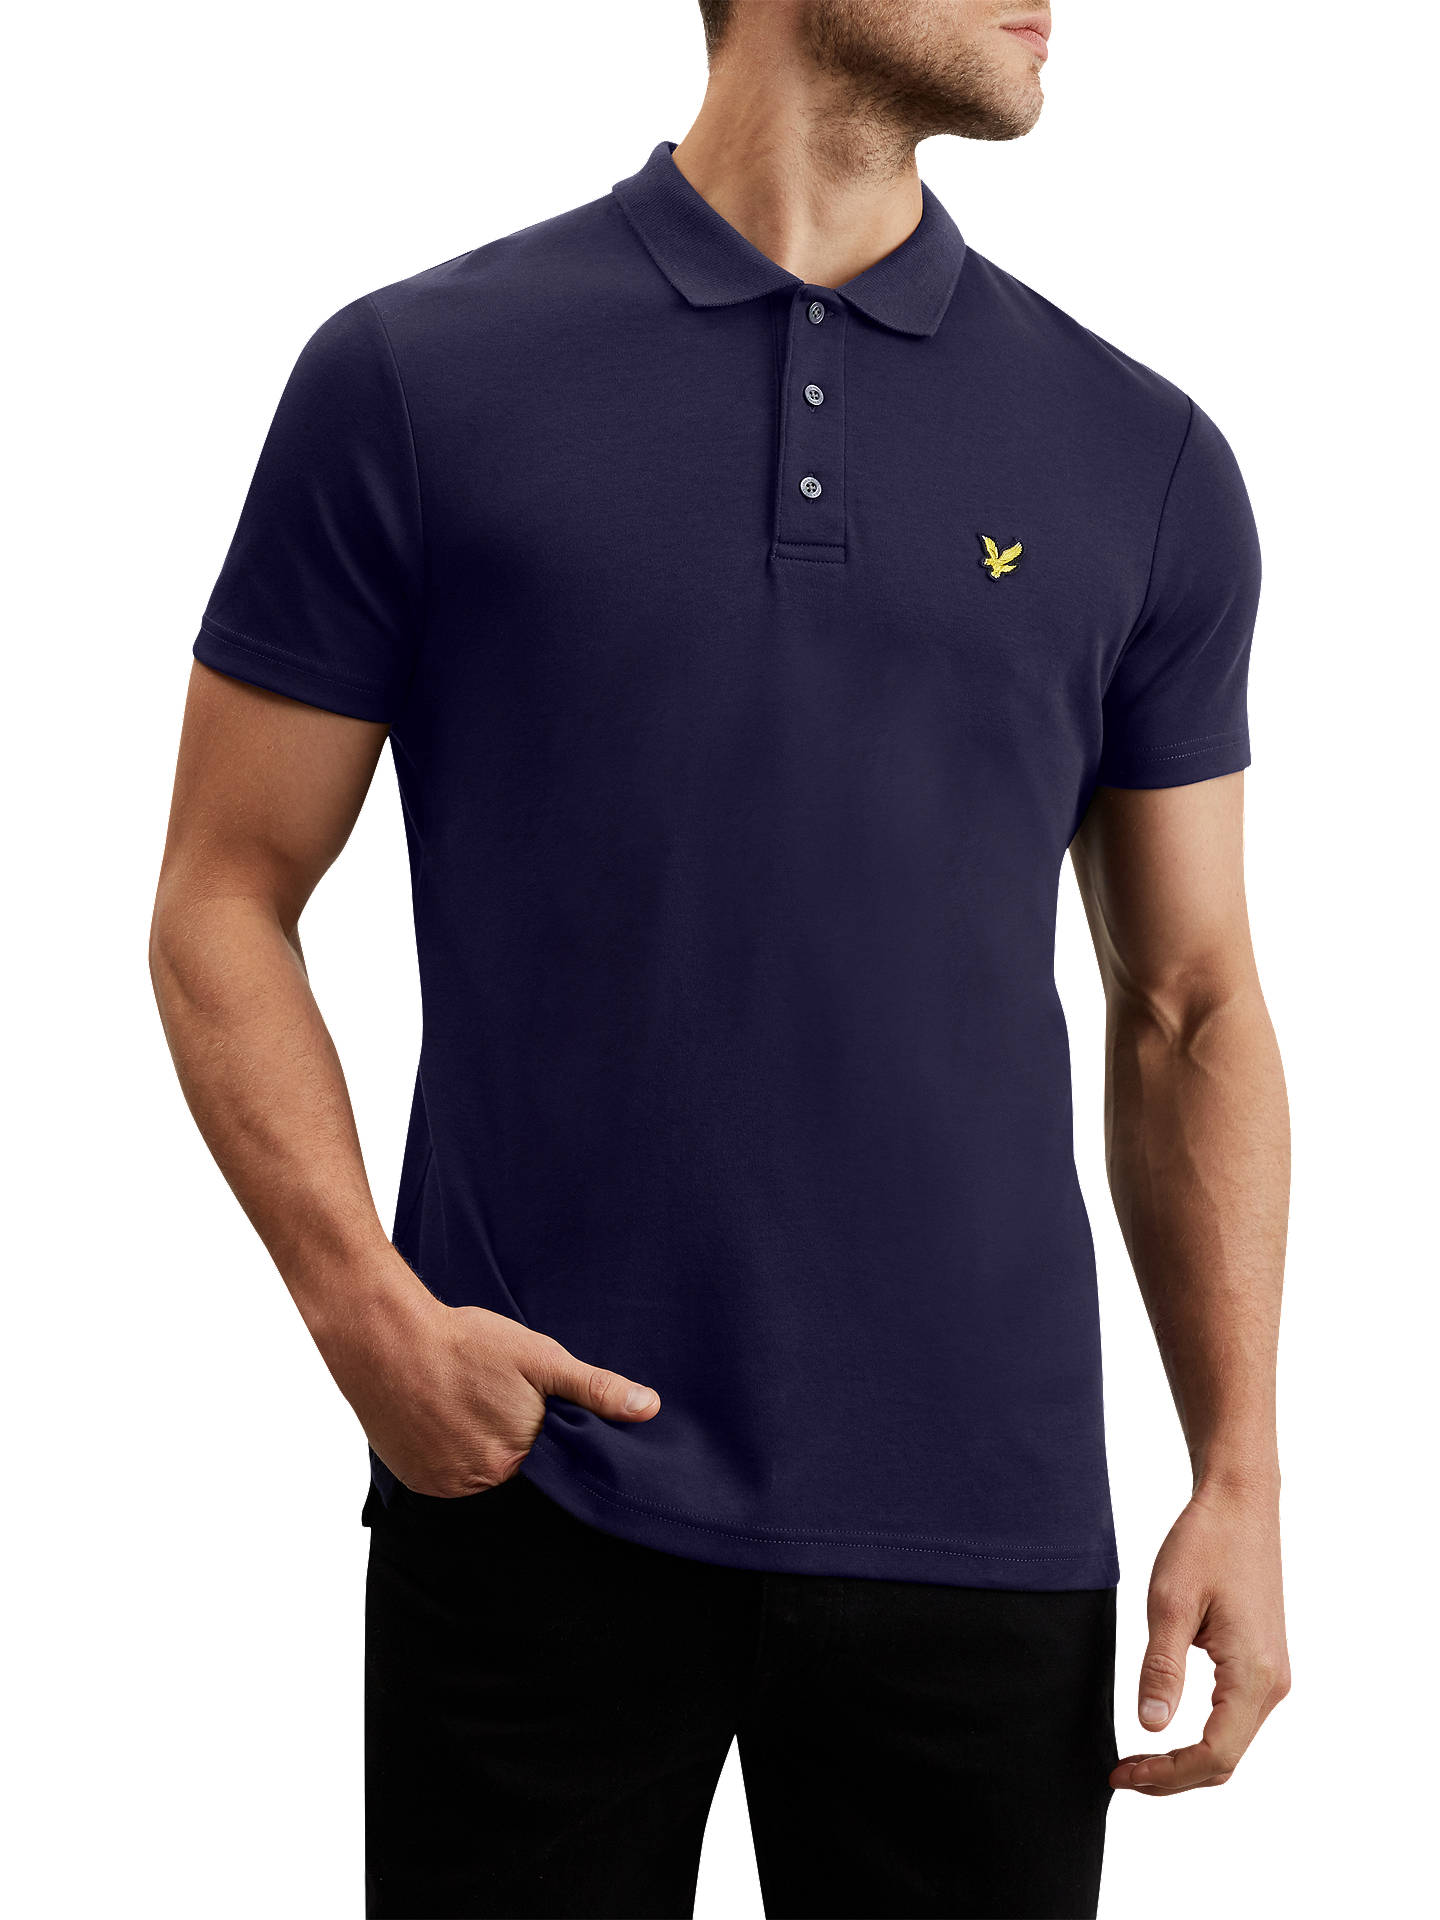 7b48476f Buy Lyle & Scott Short Sleeve Polo Shirt, Navy, S Online at johnlewis.